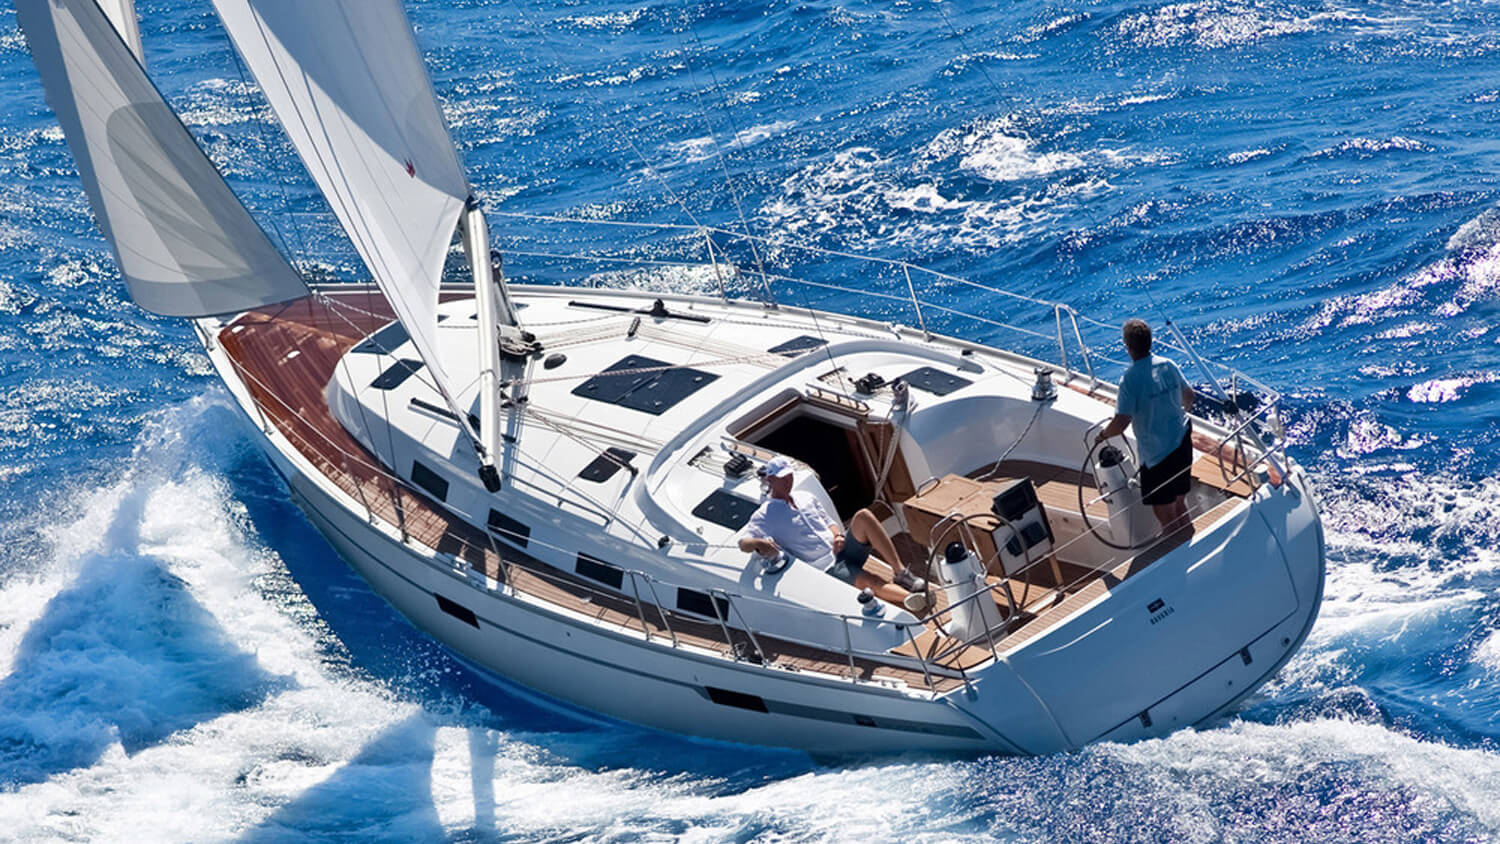 Yachting: Looking at VAT and Accounting Issues